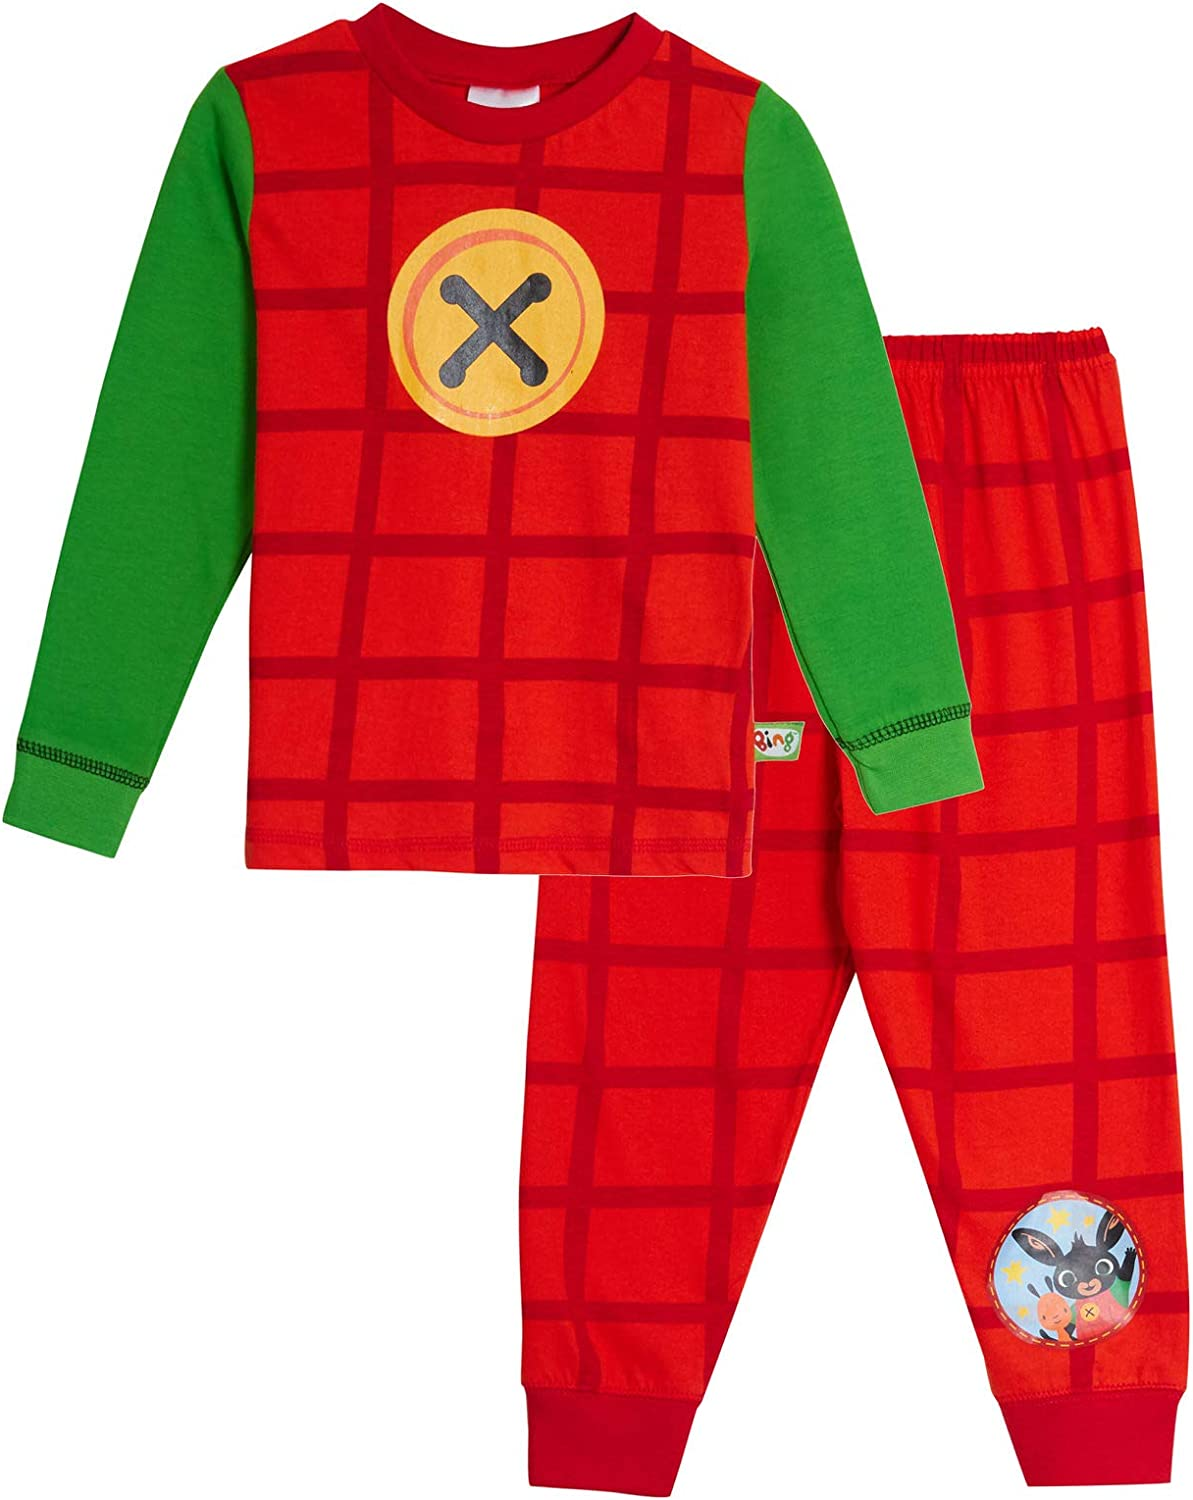 Kids Bing Bunny Fleece All In One Pjs Pyjama Sleepsuit Boys Girls 2-6 Years